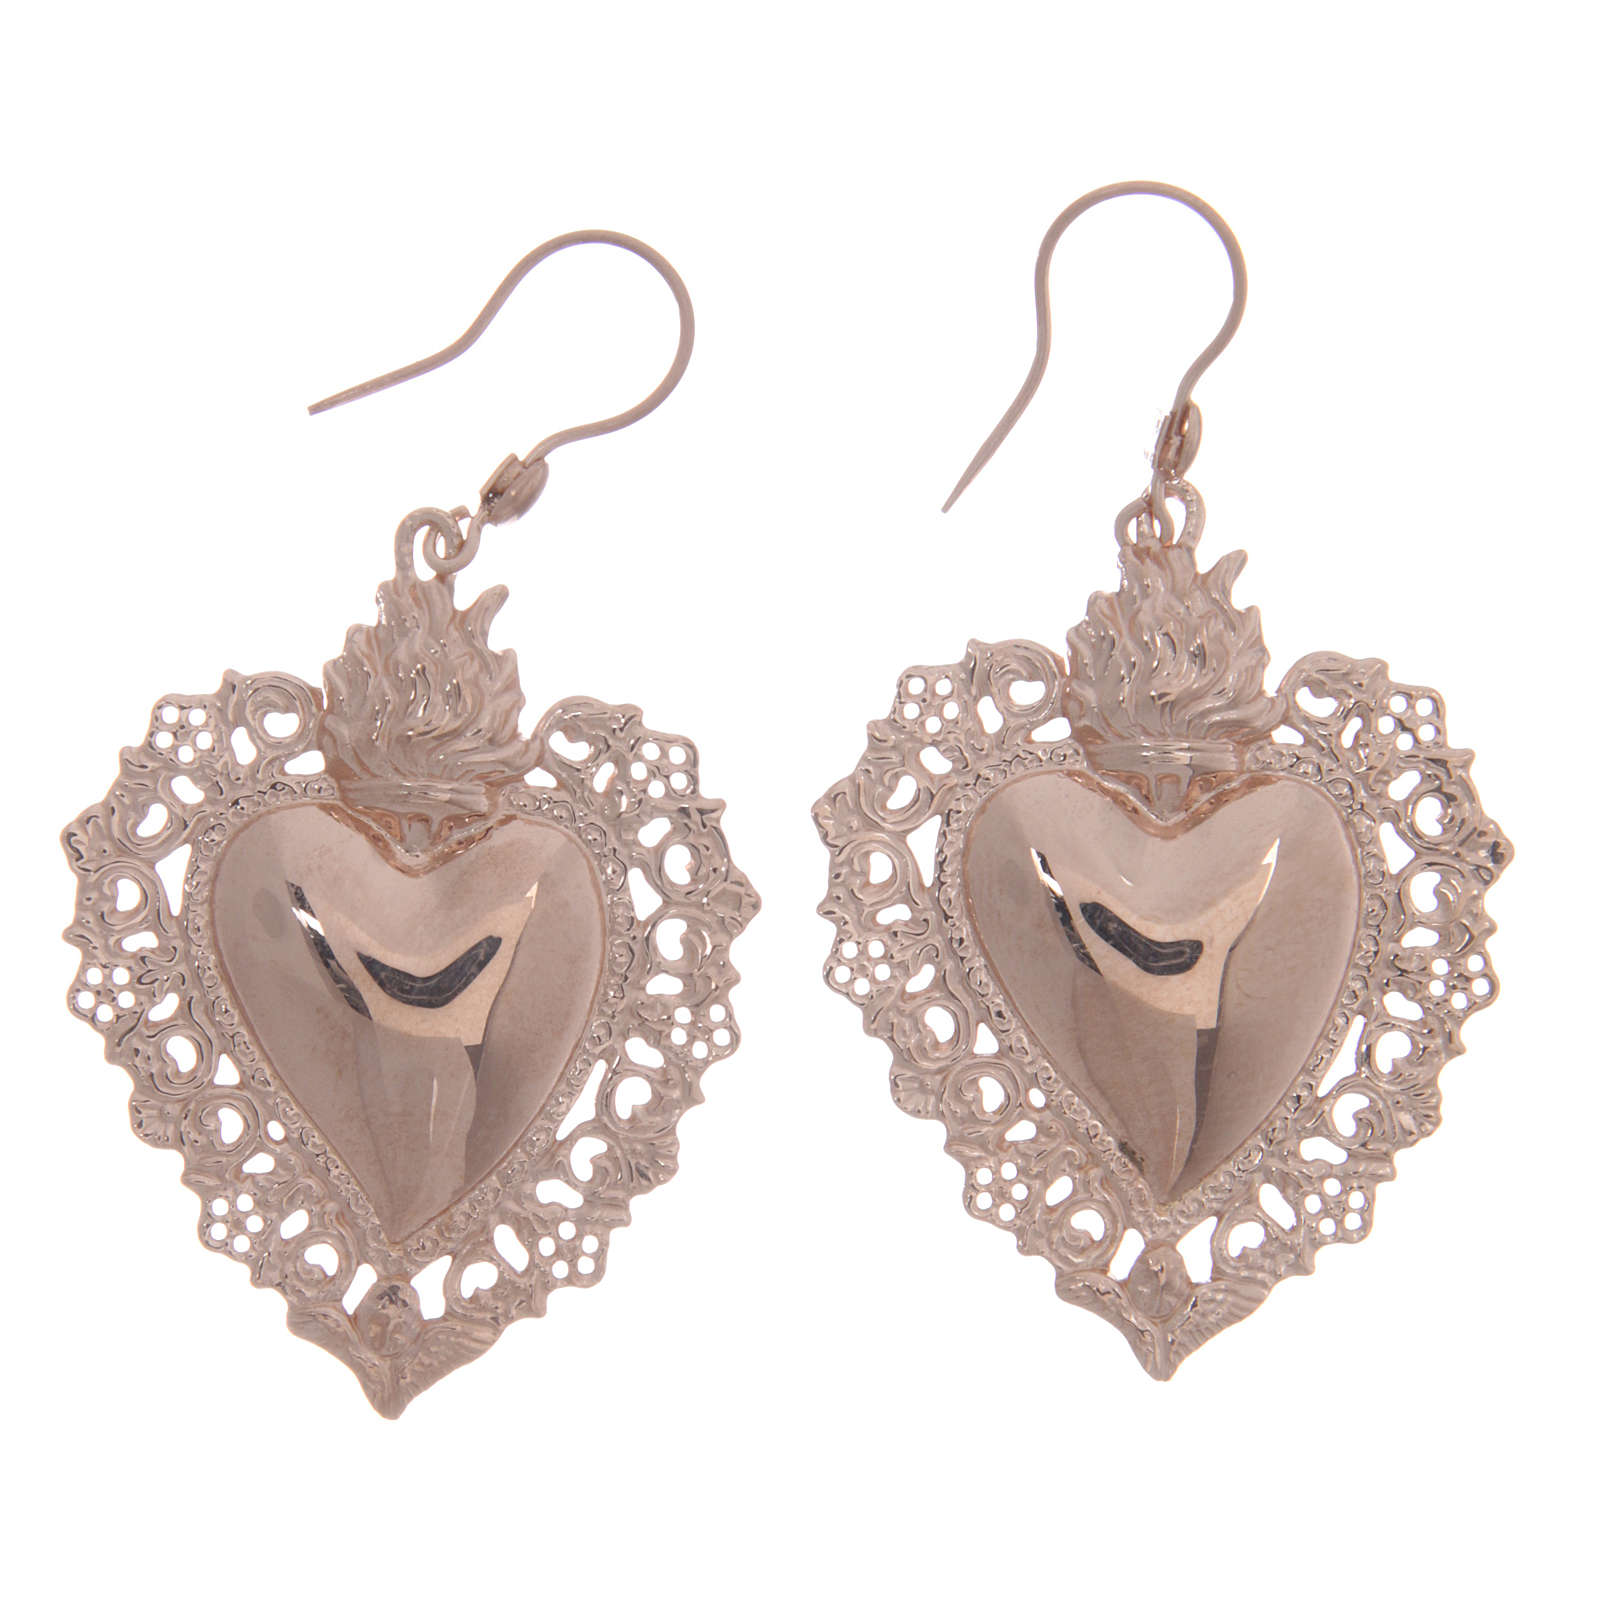 925 sterling silver earrings with rosè votive drilled heart 4 cm 4